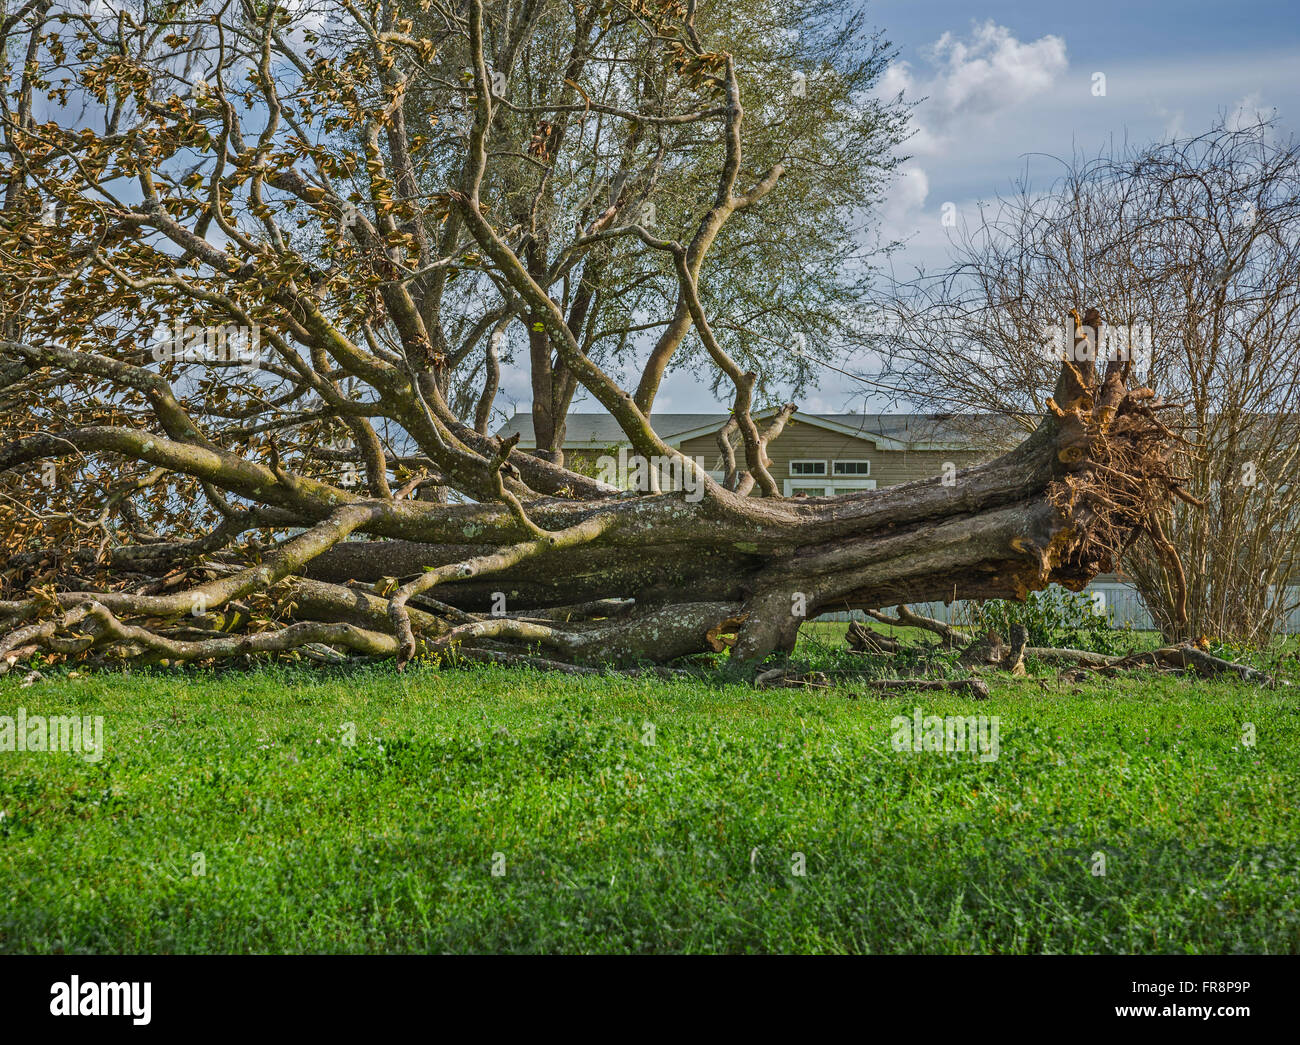 Huge tree toppled over in yard of a rural home. - Stock Image